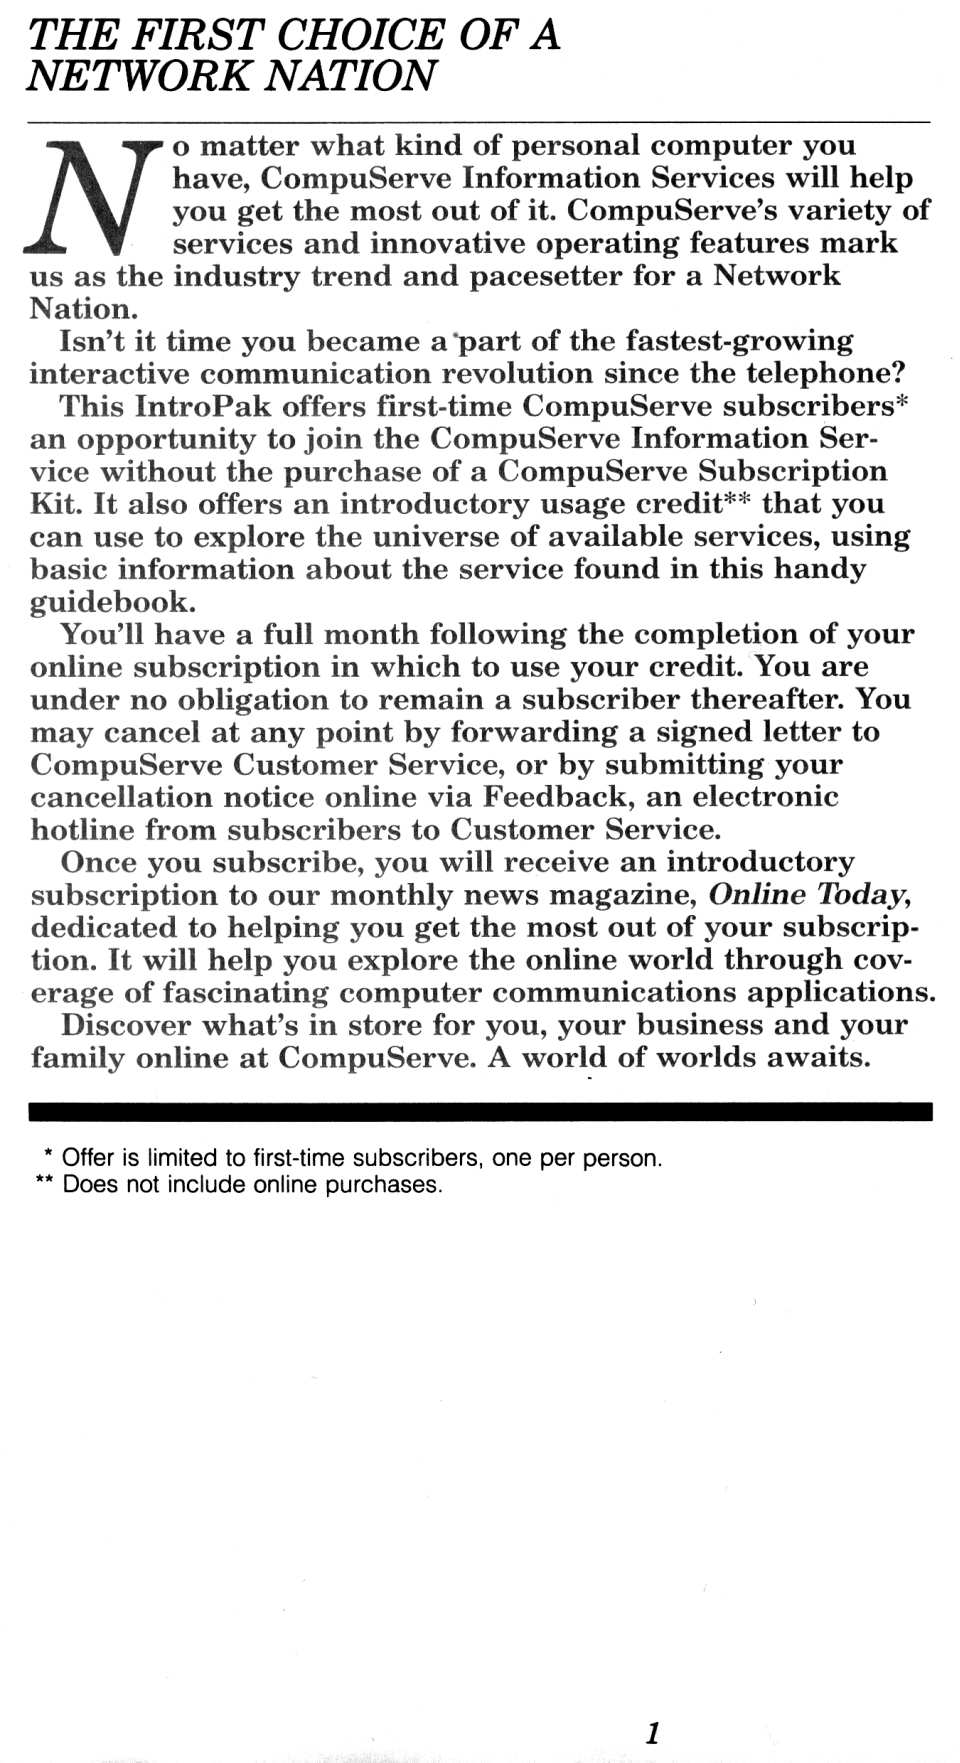 [CompuServe IntroPak page 1/44  The First Choice of a Network Nation]